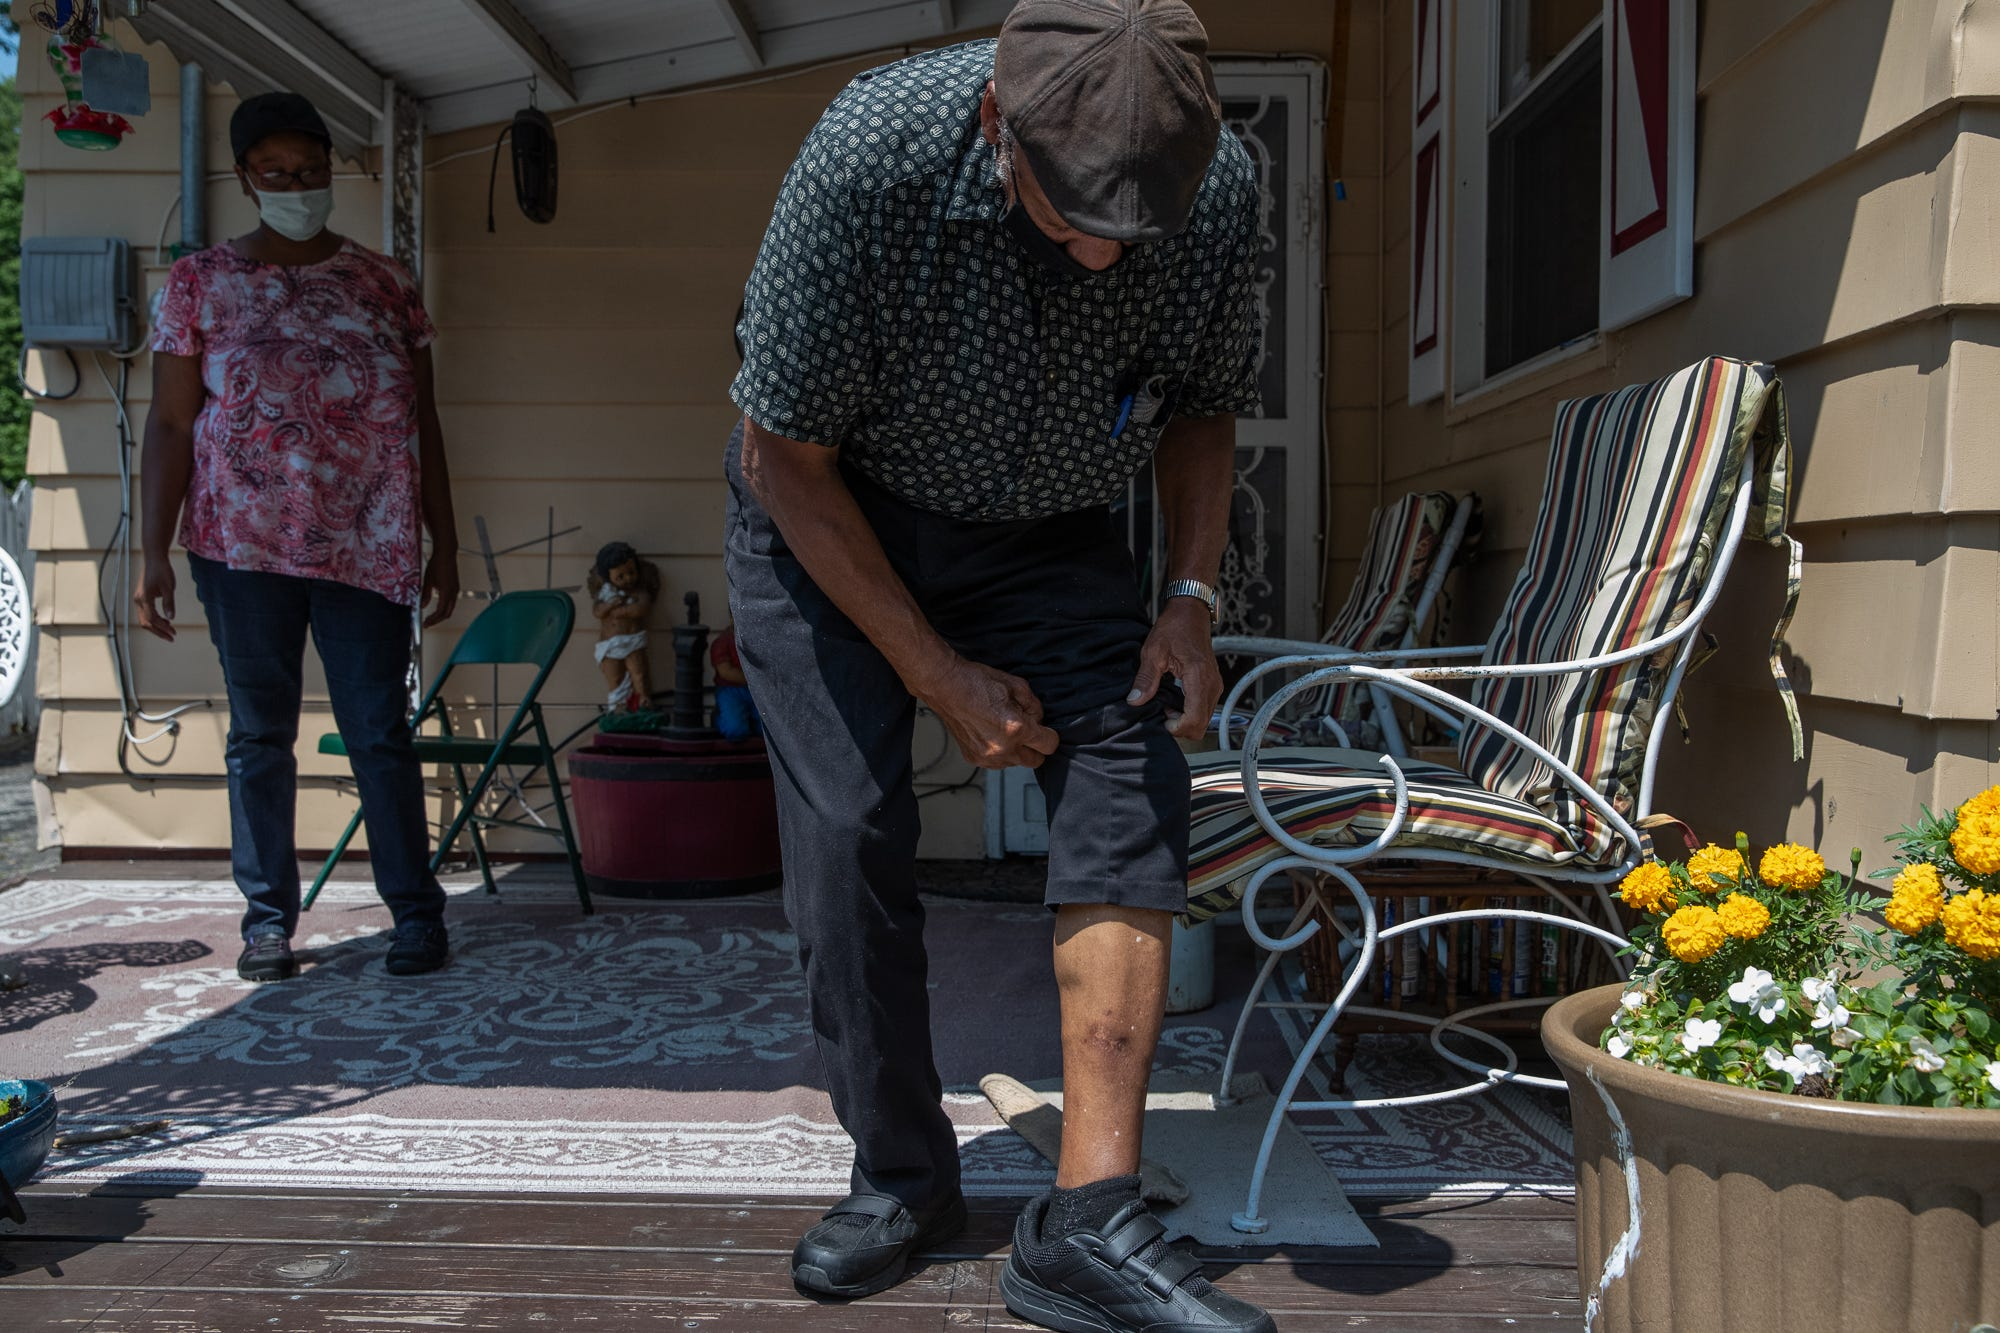 Gordon Mitchum Sr., 78, of Indianapolis, a retired mail handler of 43 years, pulls up his left pant leg to show the scars left by an Indianapolis Metropolitan Police Department dog bite, at his home on Monday, July 6, 2020. Mitchum says he was given no waring when an IMPD K-9 officer entered his yard to search for possible suspects in a carjacking after a chase that ended on Mitchum's street.